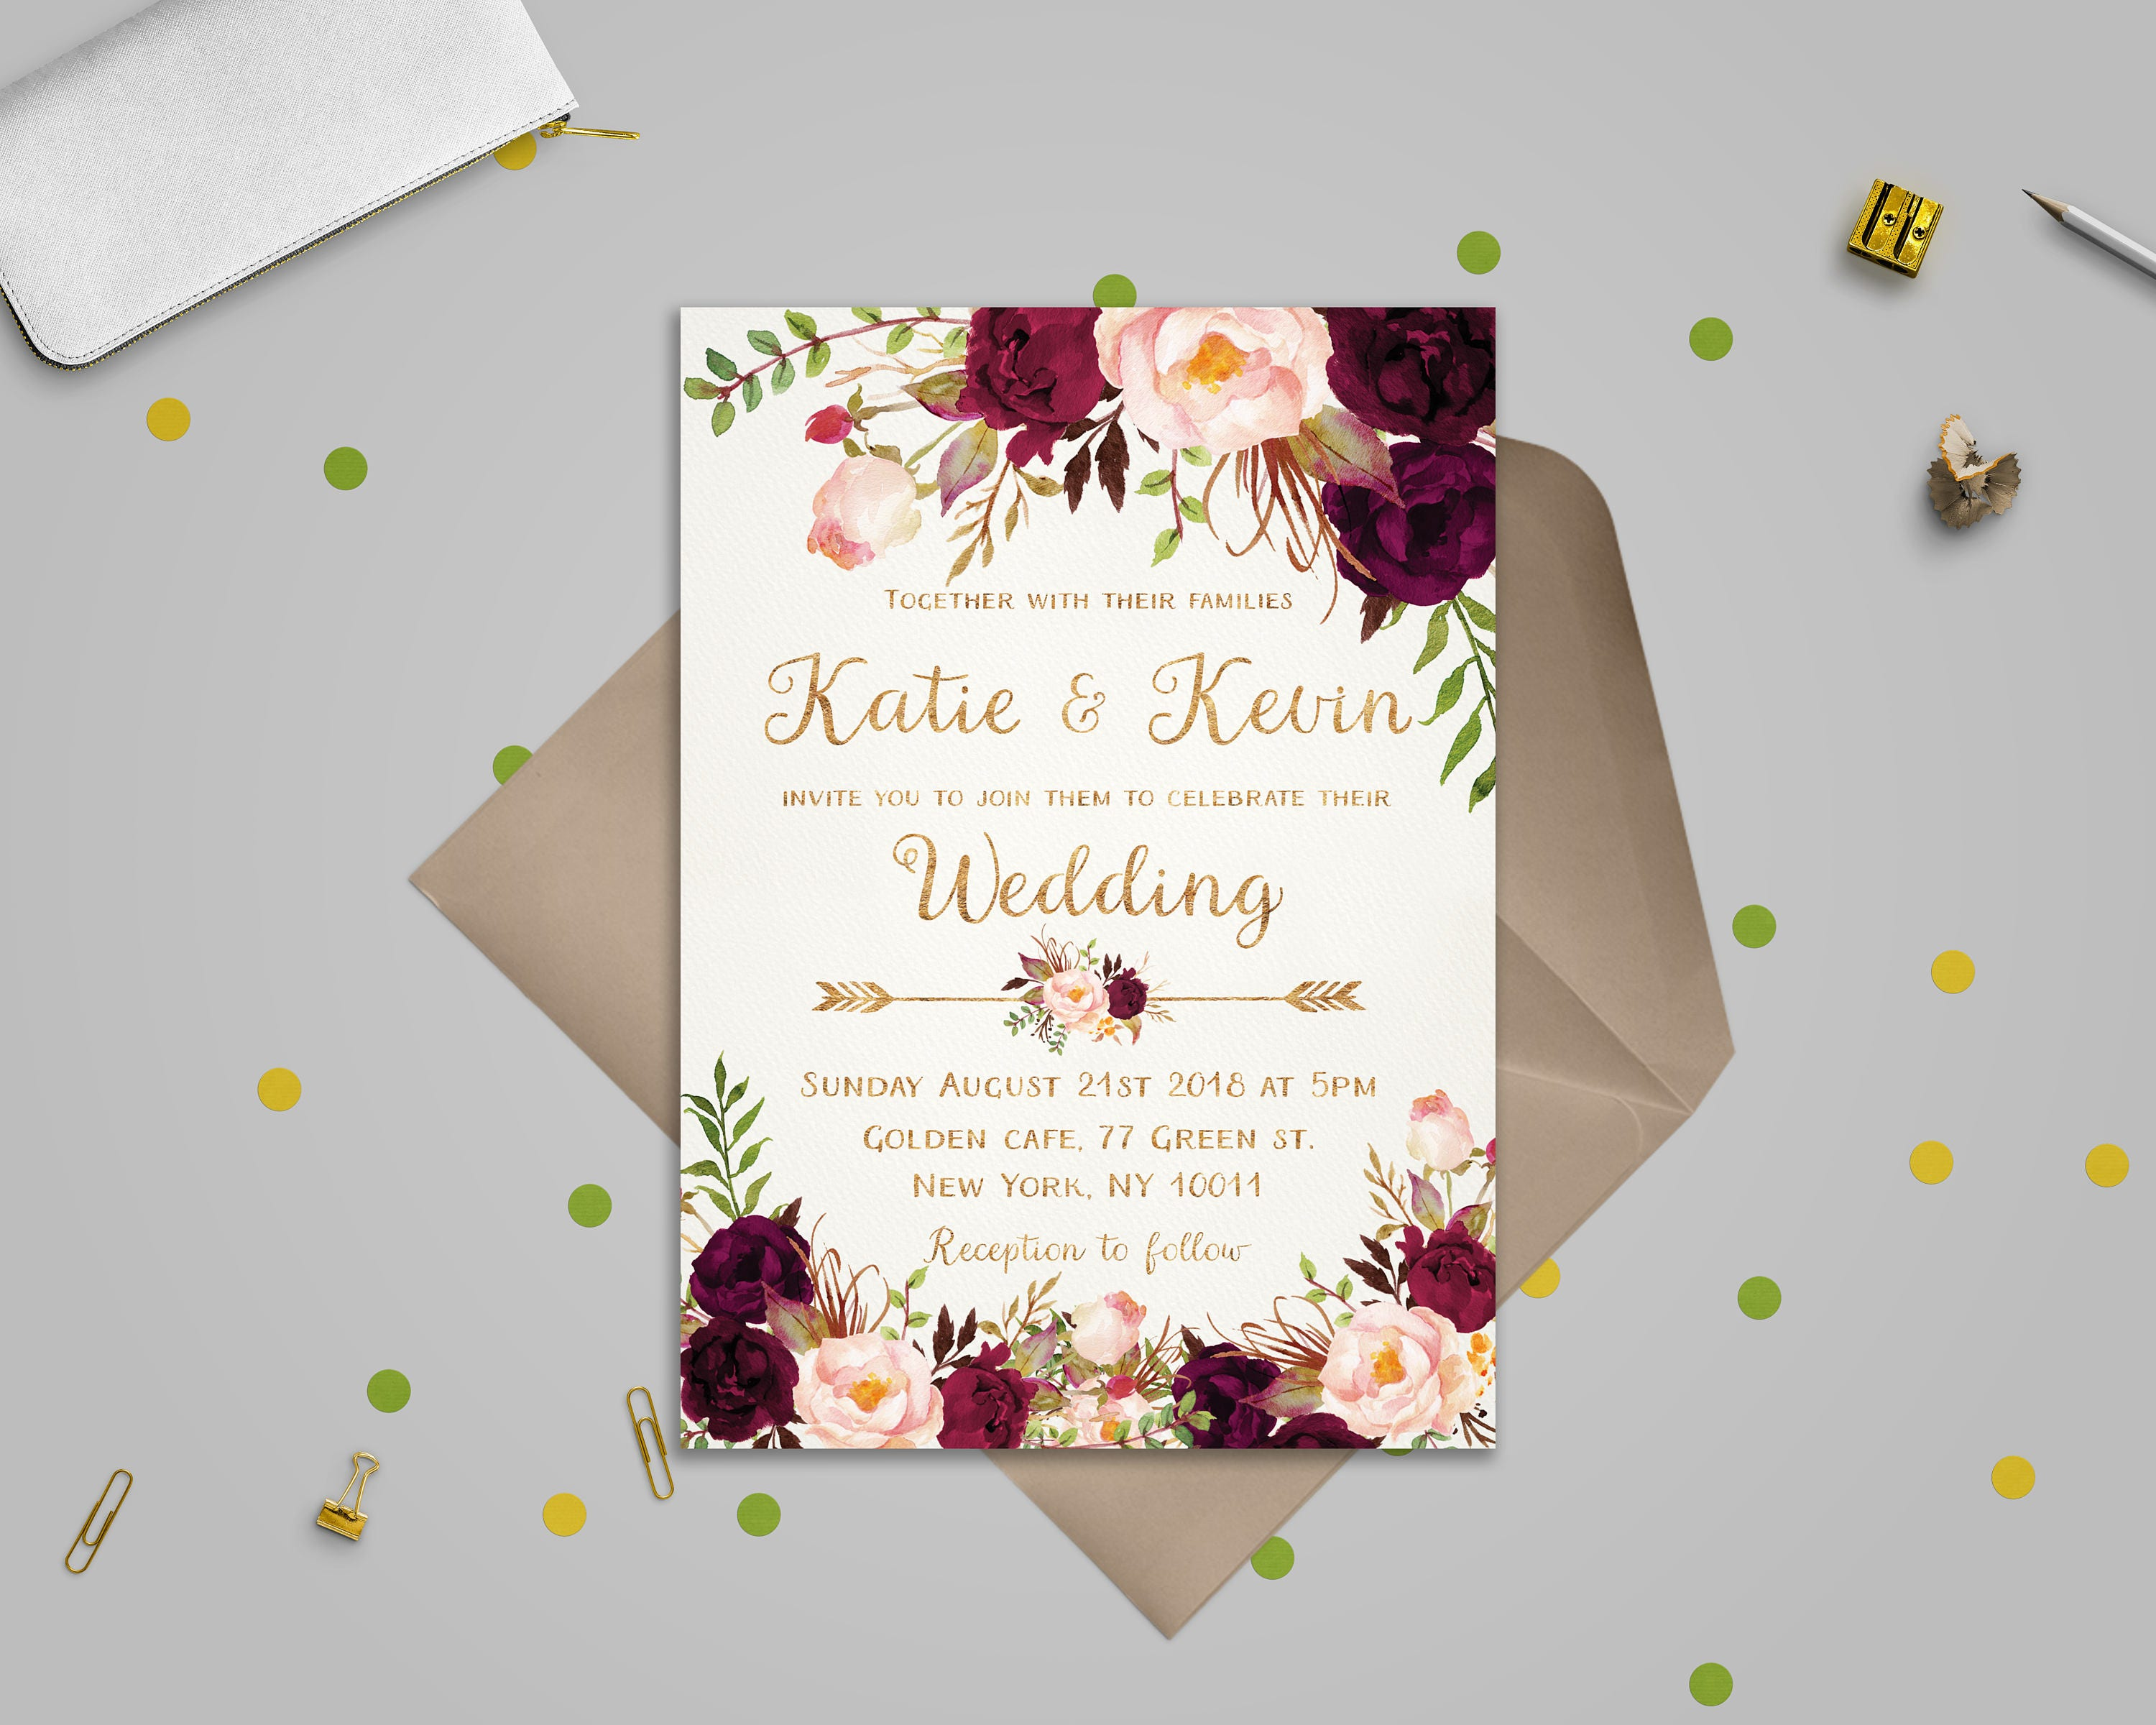 Invitation Cards For Wedding